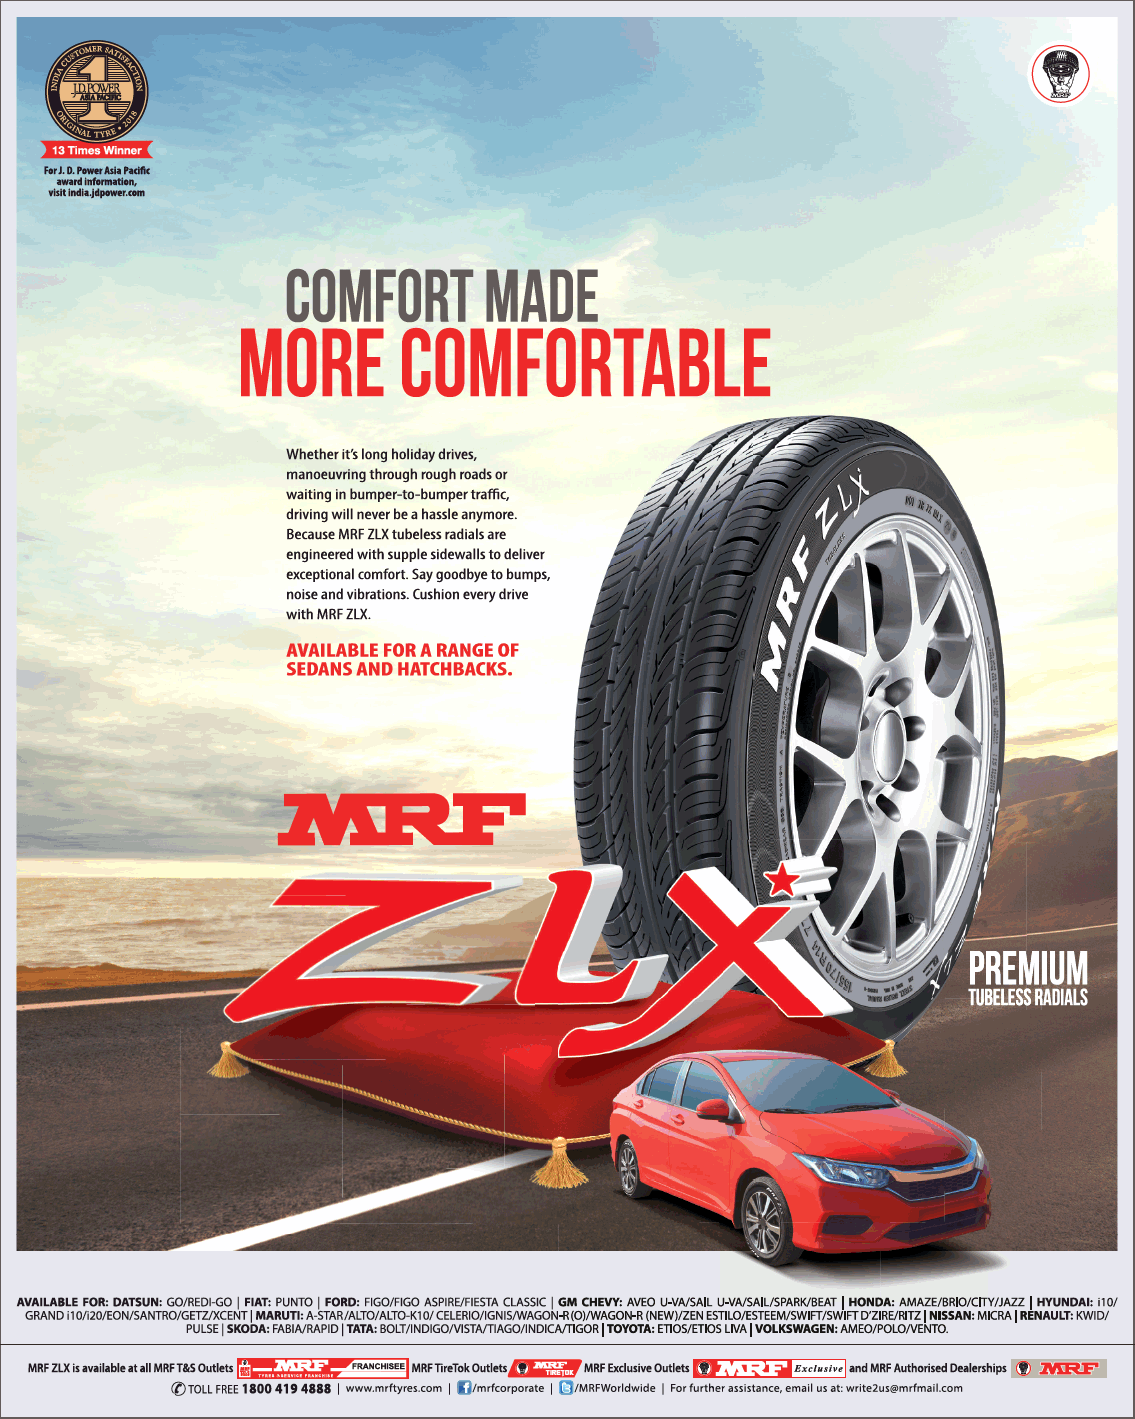 Mrf Zlx Comfort More Comfortable Ad Car Advertising Ads Comfortable